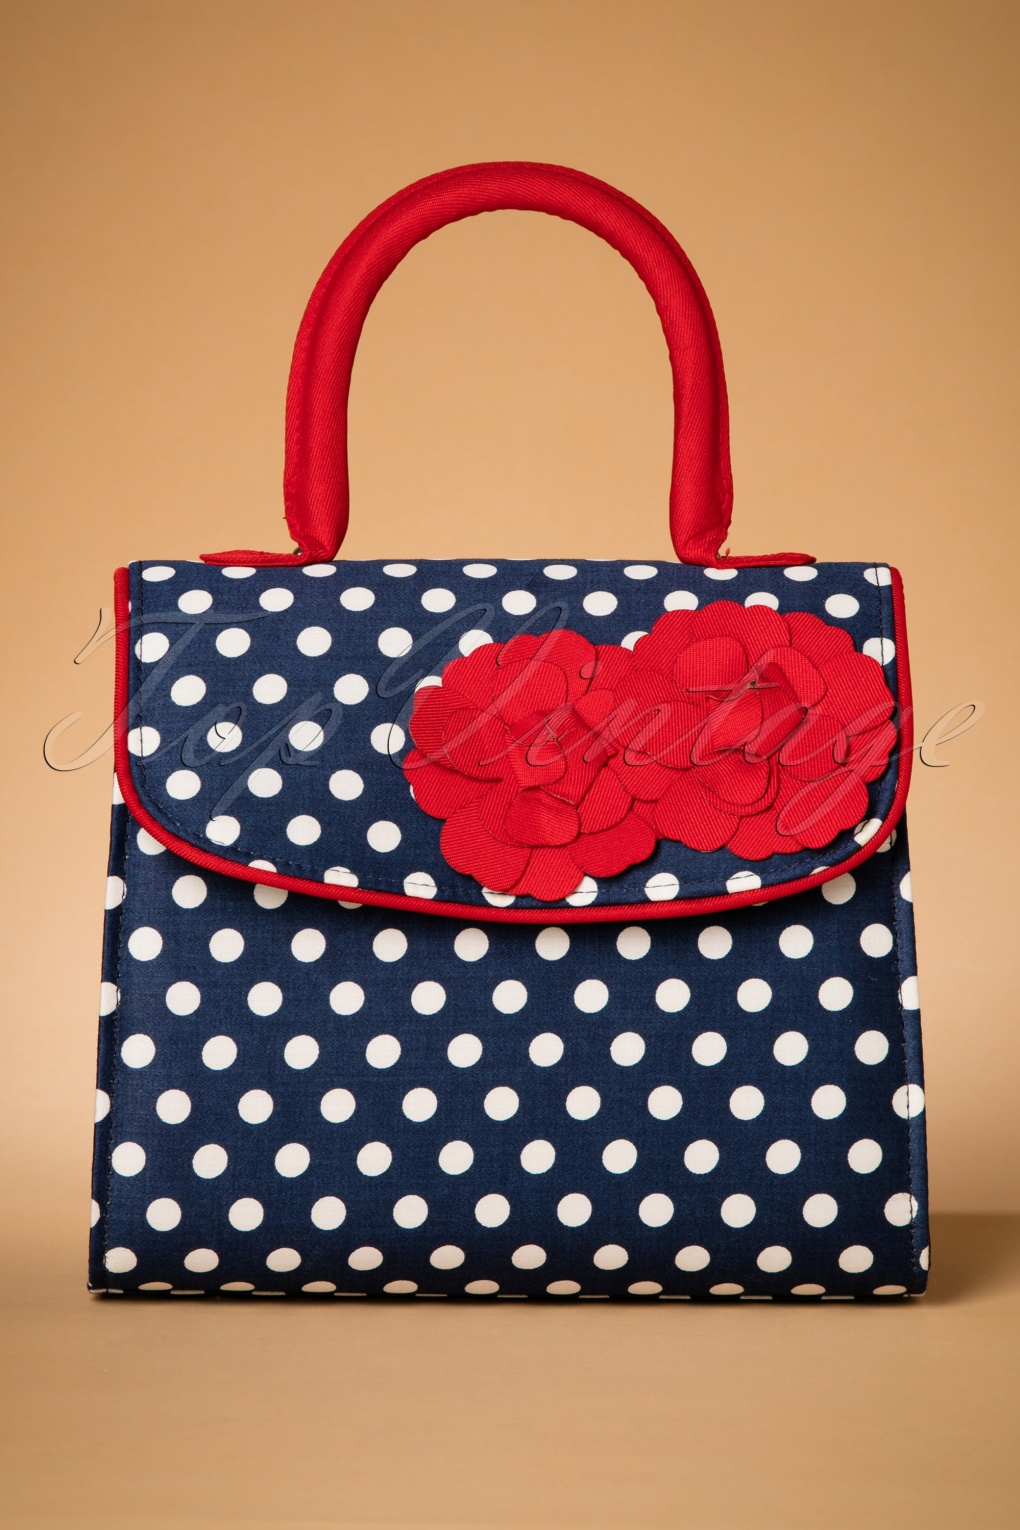 Vintage & Retro Handbags, Purses, Wallets, Bags 50s Tortola Handbag in Navy Spots £46.13 AT vintagedancer.com